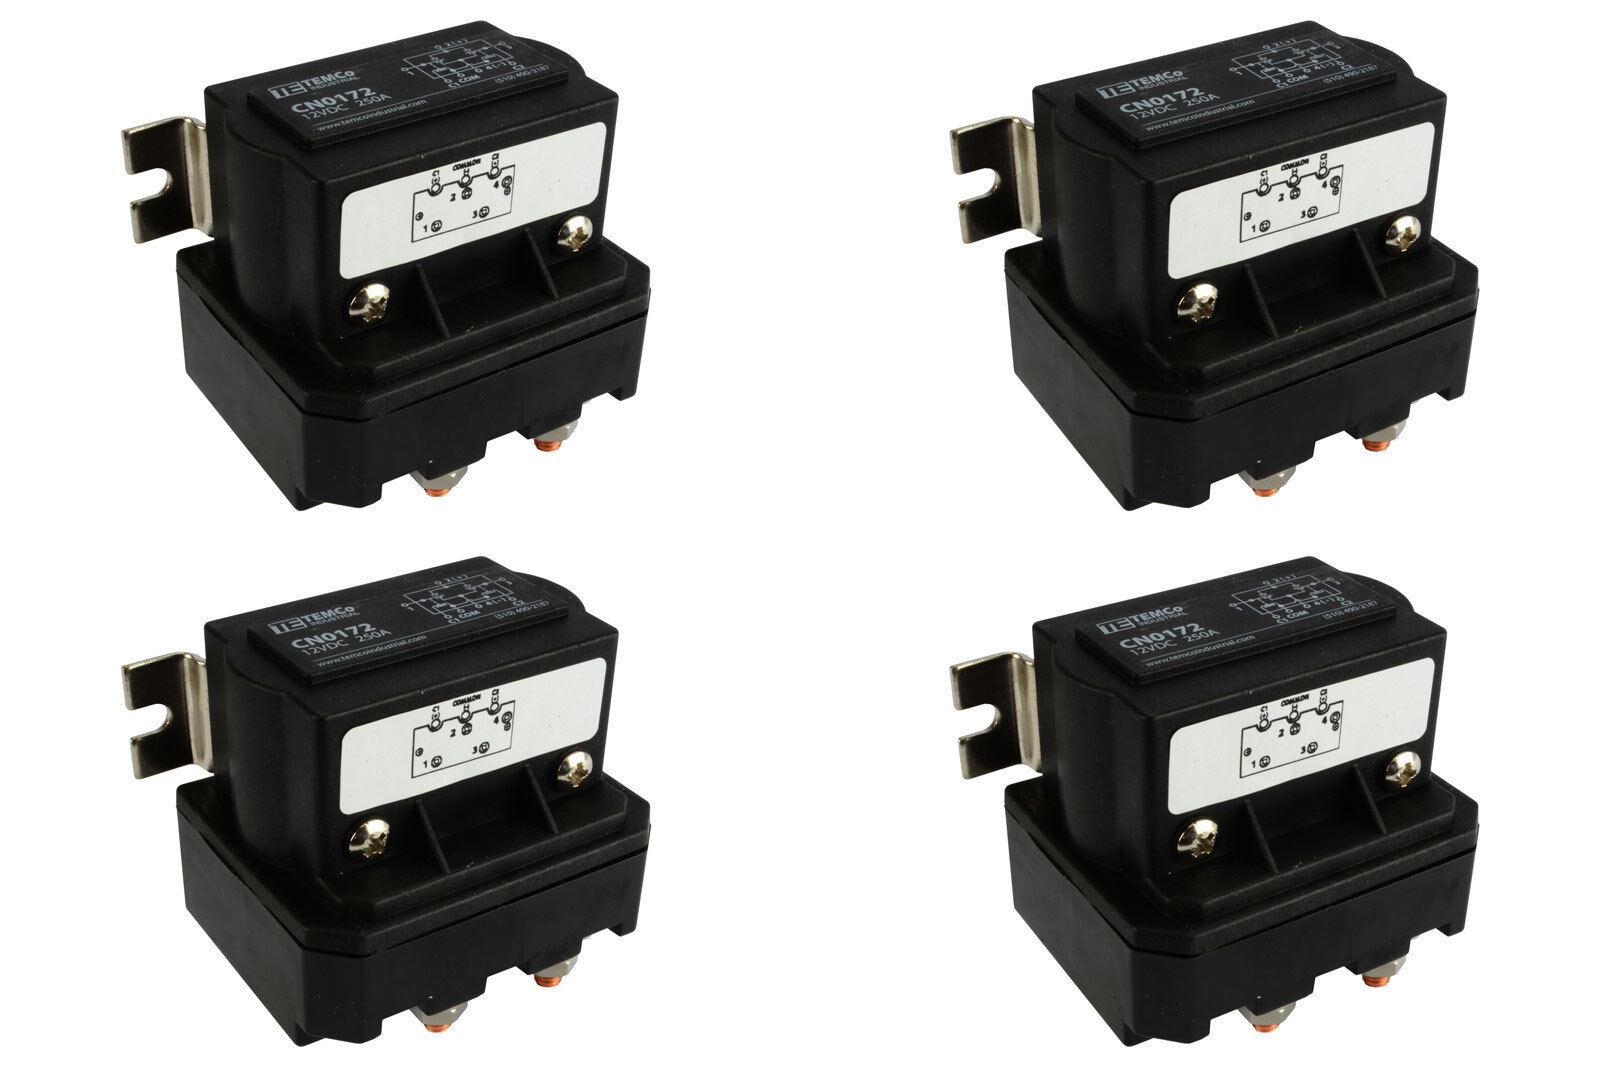 4x Temco 250a Dc Winch Motor Reversing Solenoid Relay Switch 12 Volt Wiring Diagram 1 Of 11free Shipping